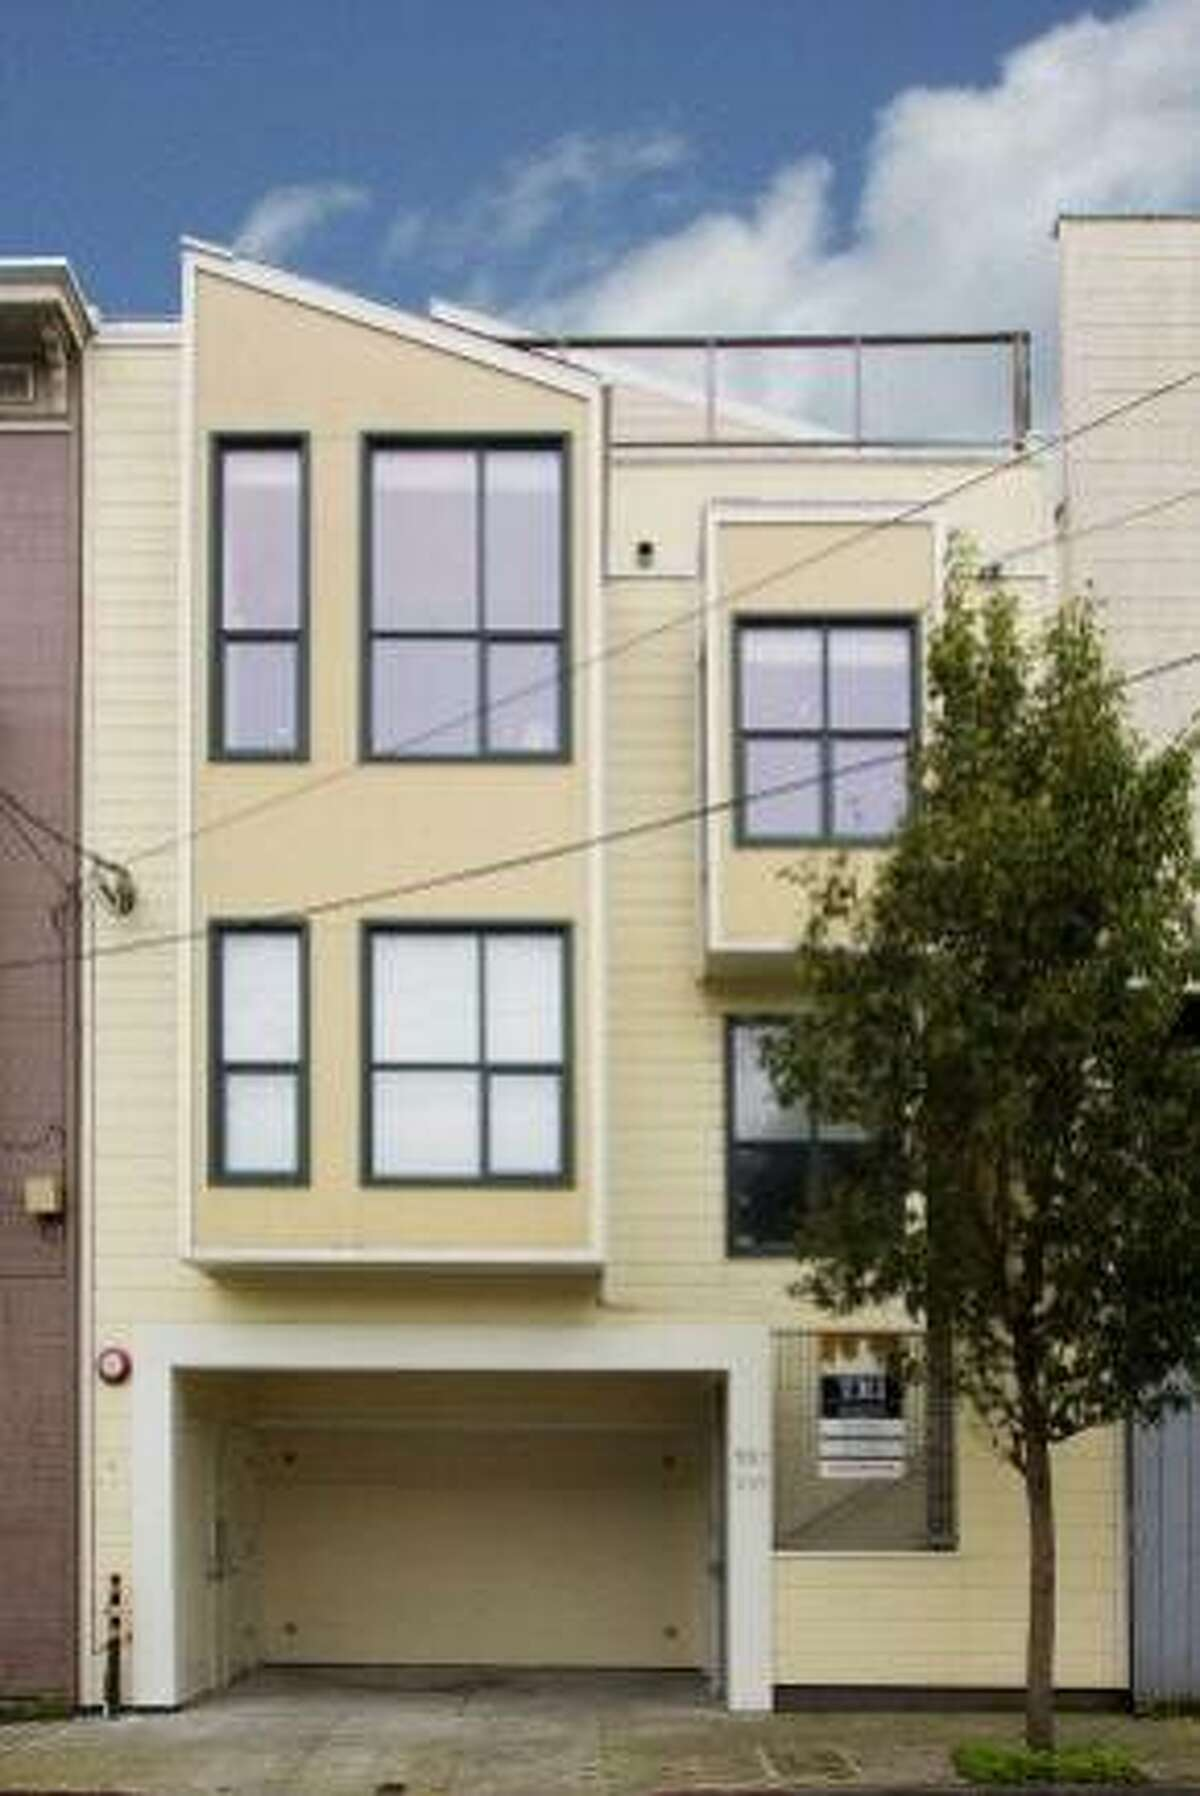 The top-floor condo at 557 Birch St. in Hayes Valley was built in 2001 and includes three bedrooms and three bathrooms. The modern property is listed for $1.049 million.